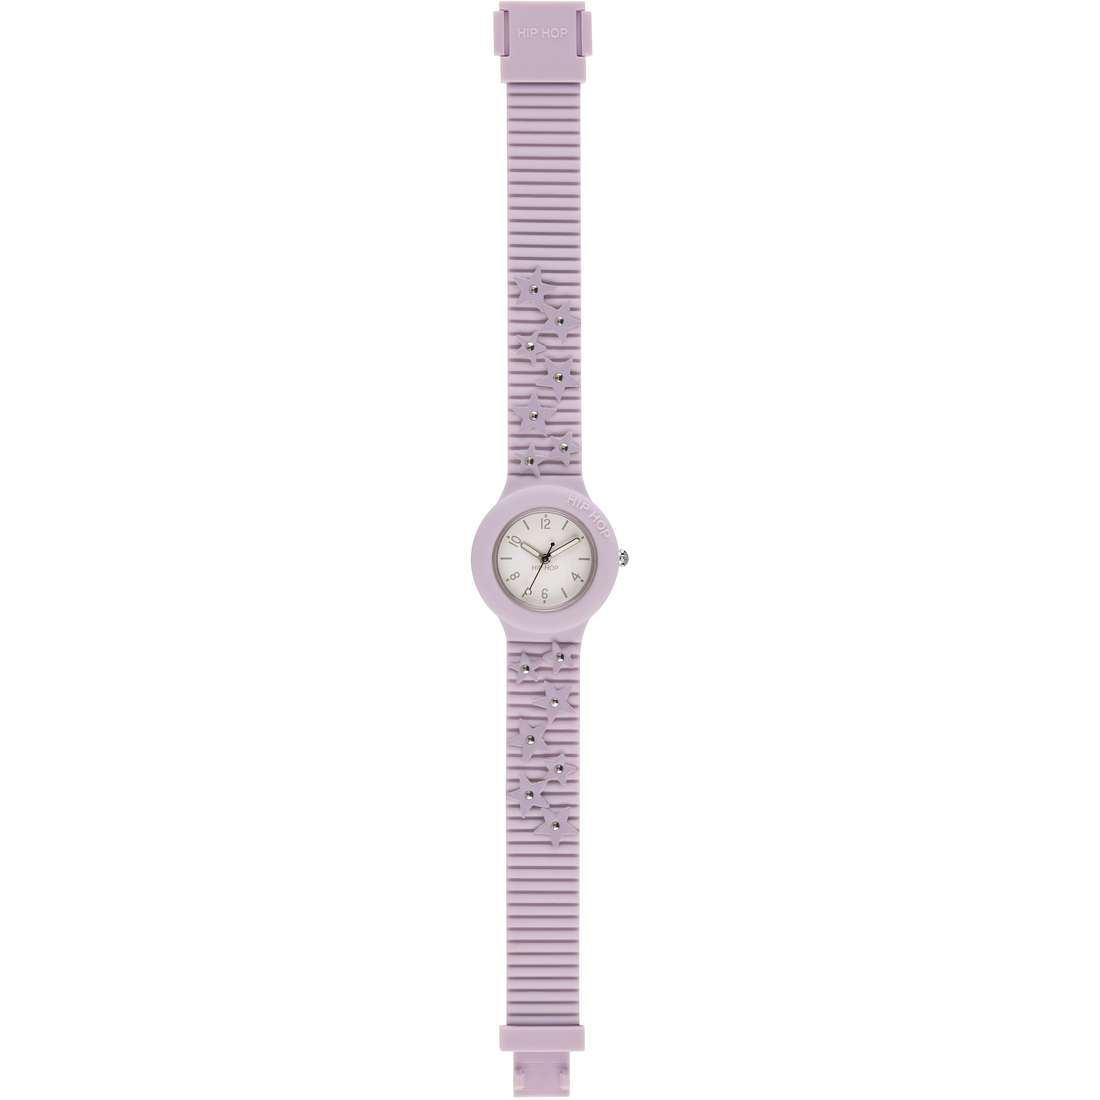 watch watch strap woman Hip Hop Starlets HWU0664